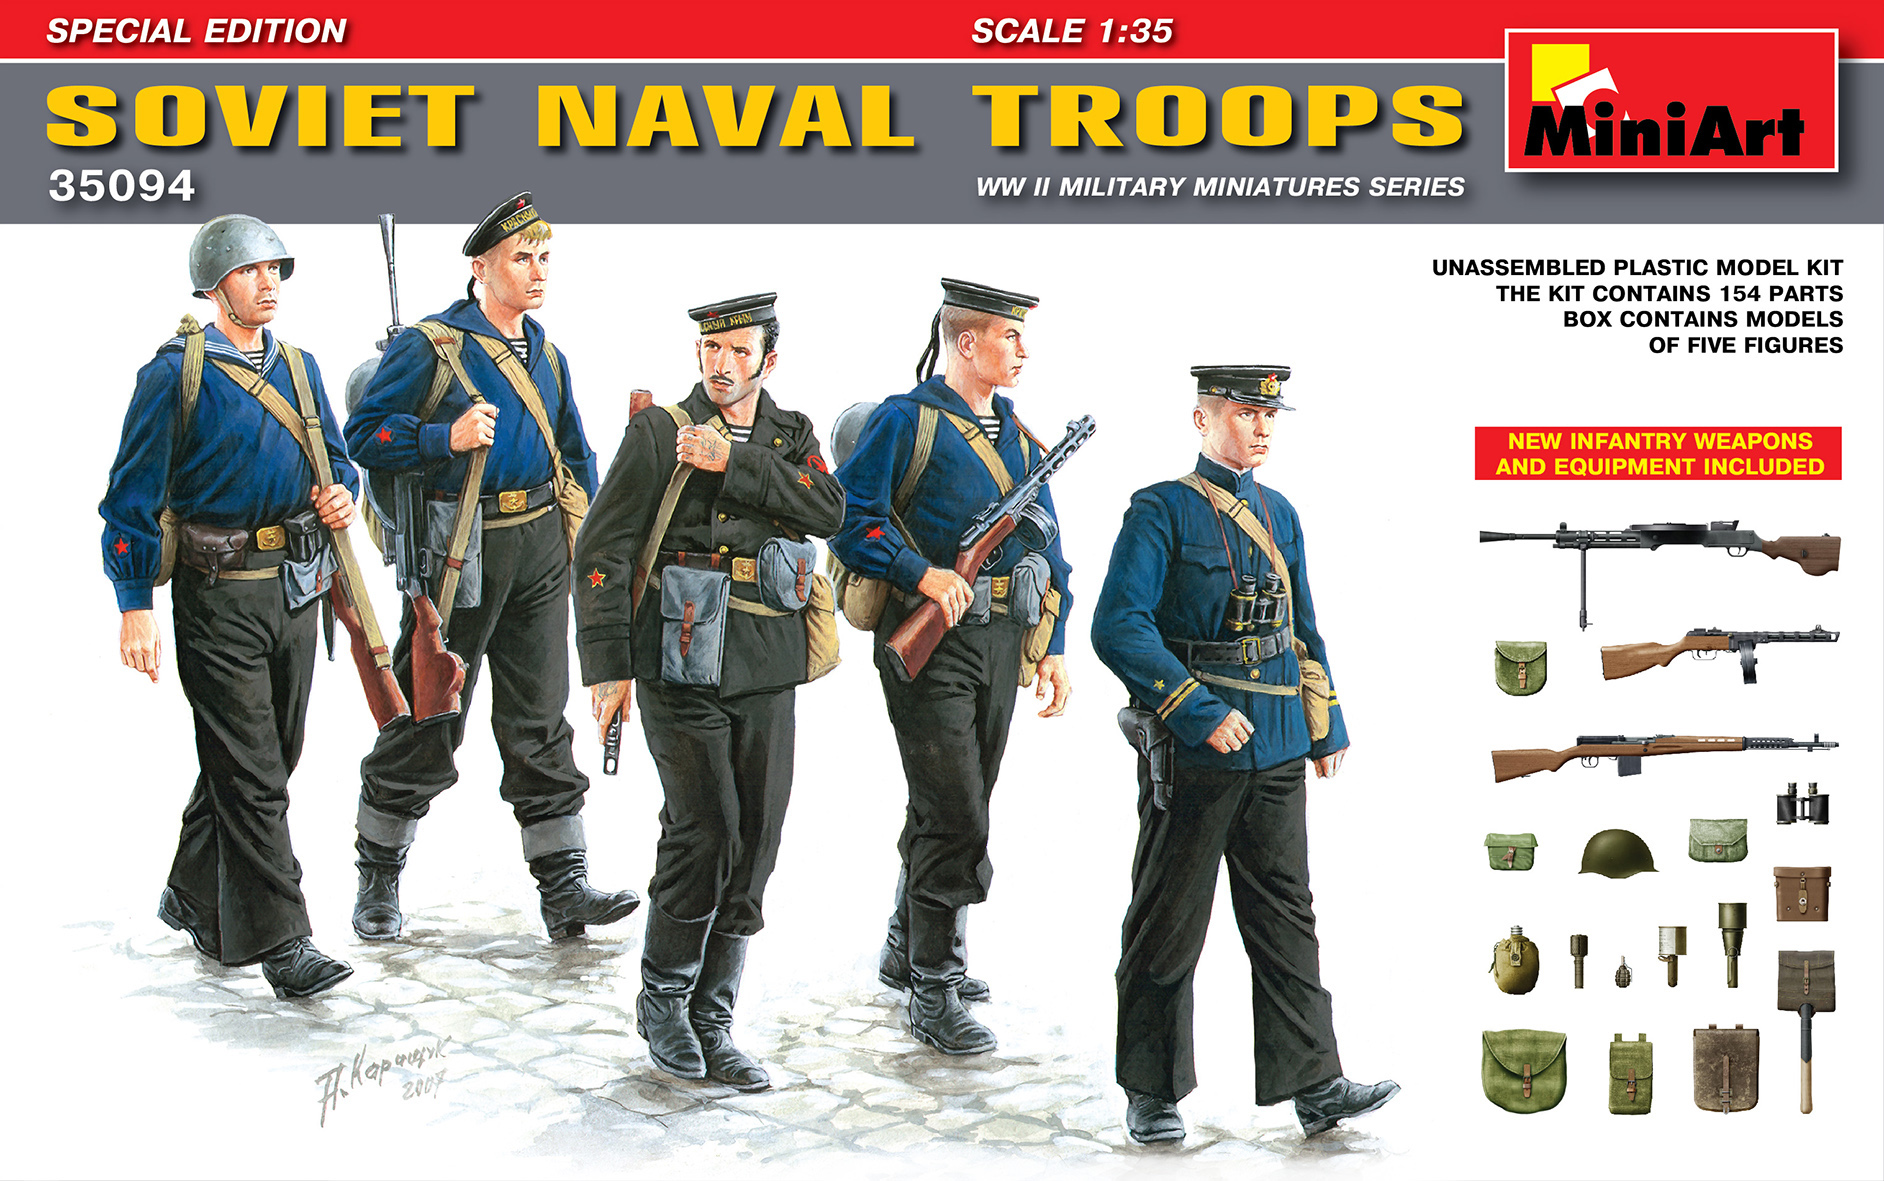 SOVIET NAVAL TROOPS SPECIAL EDITION